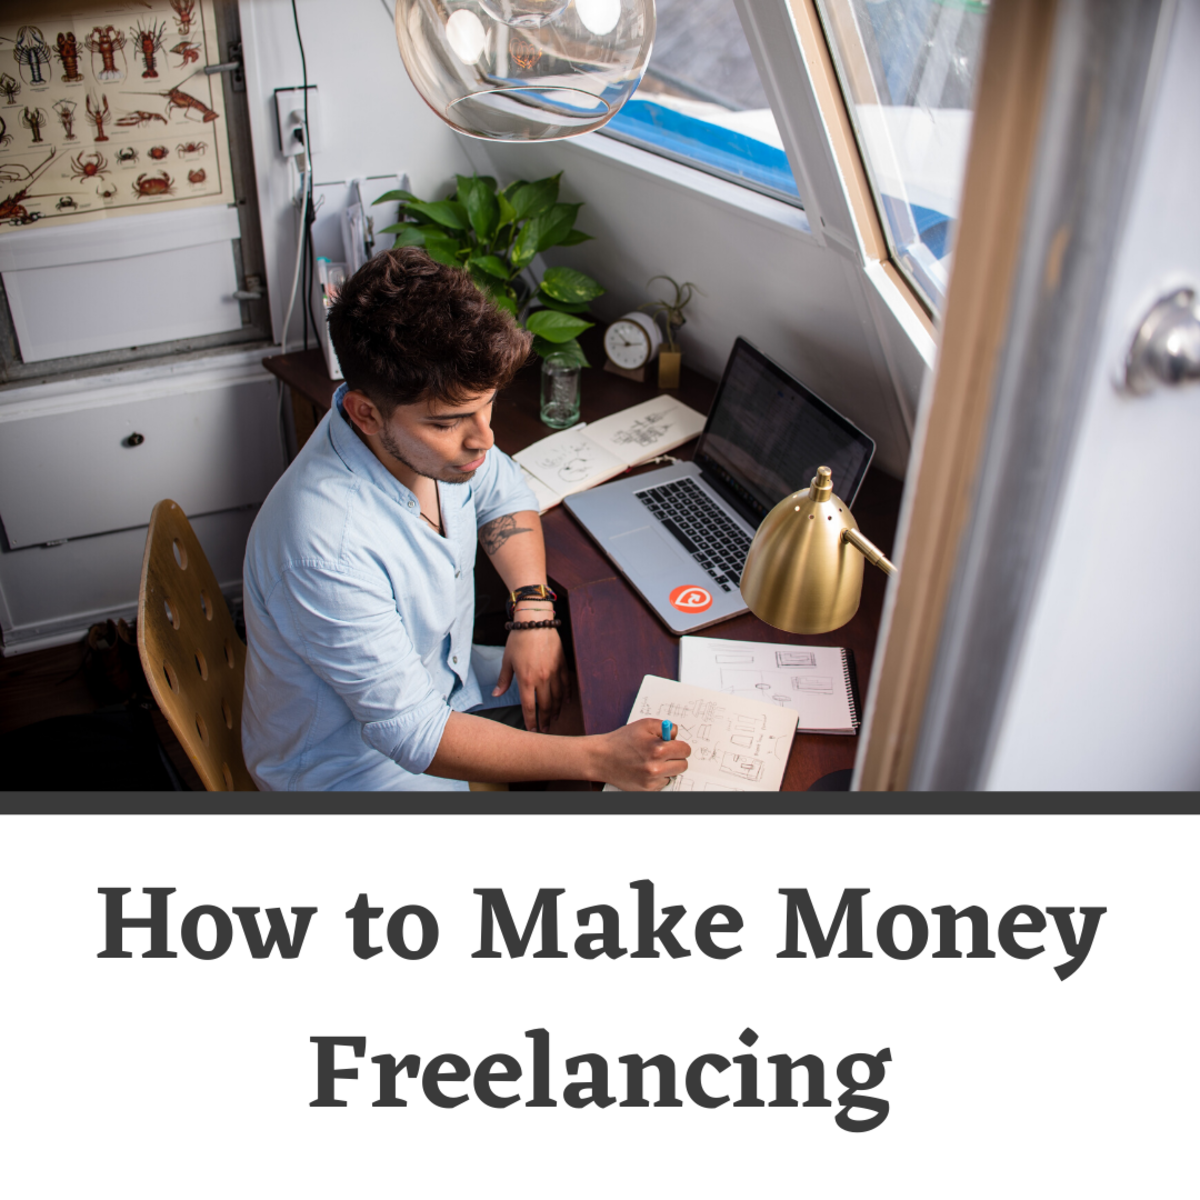 Read on to learn how you can make money freelancing online.